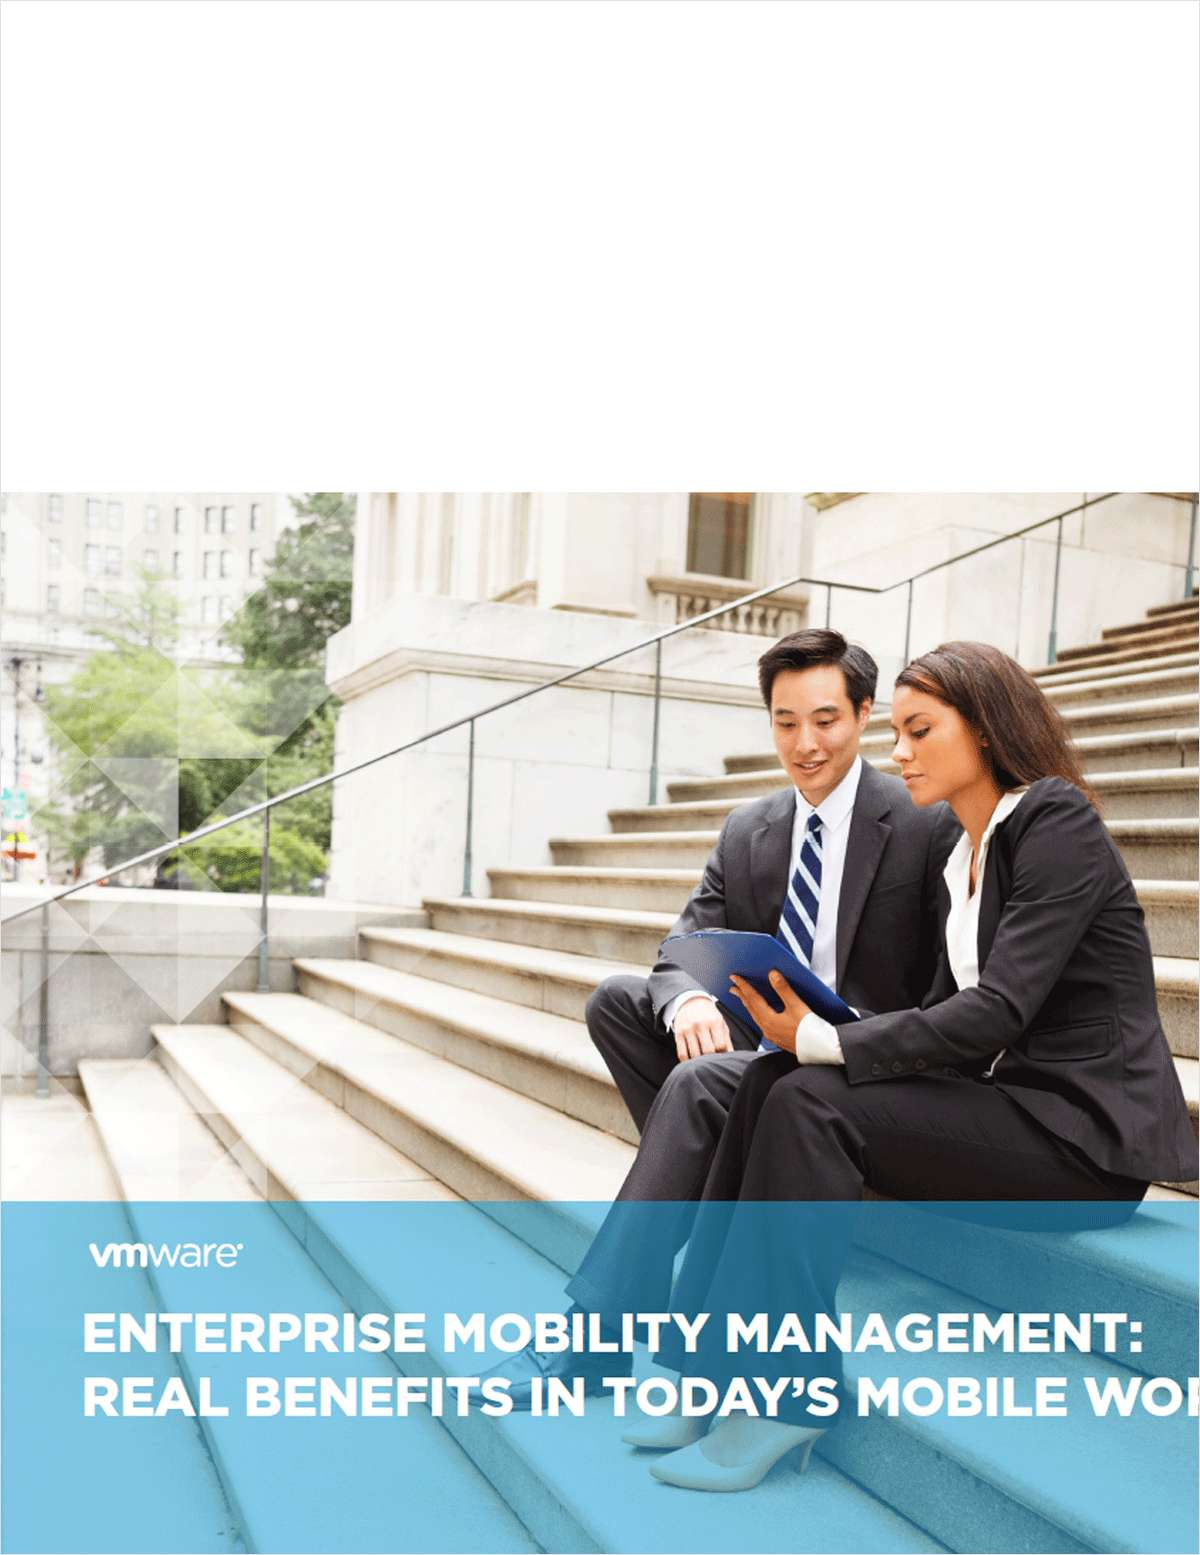 Enterprise Mobility Management: Real Benefits in Today's Mobile World